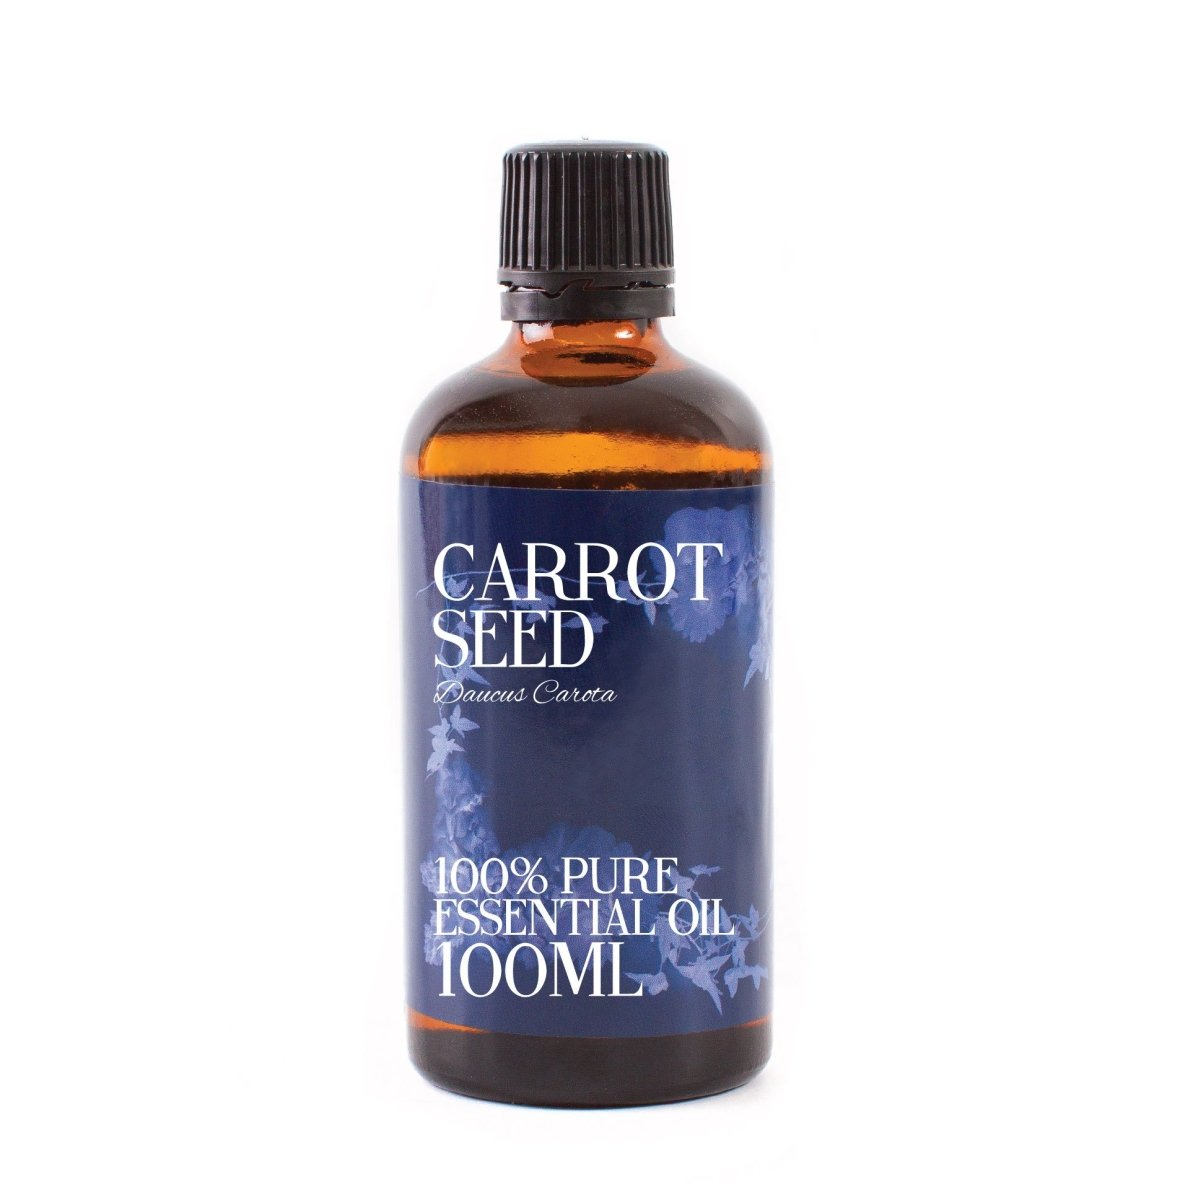 Carrot Seed Essential Oil - Mystic Moments UK